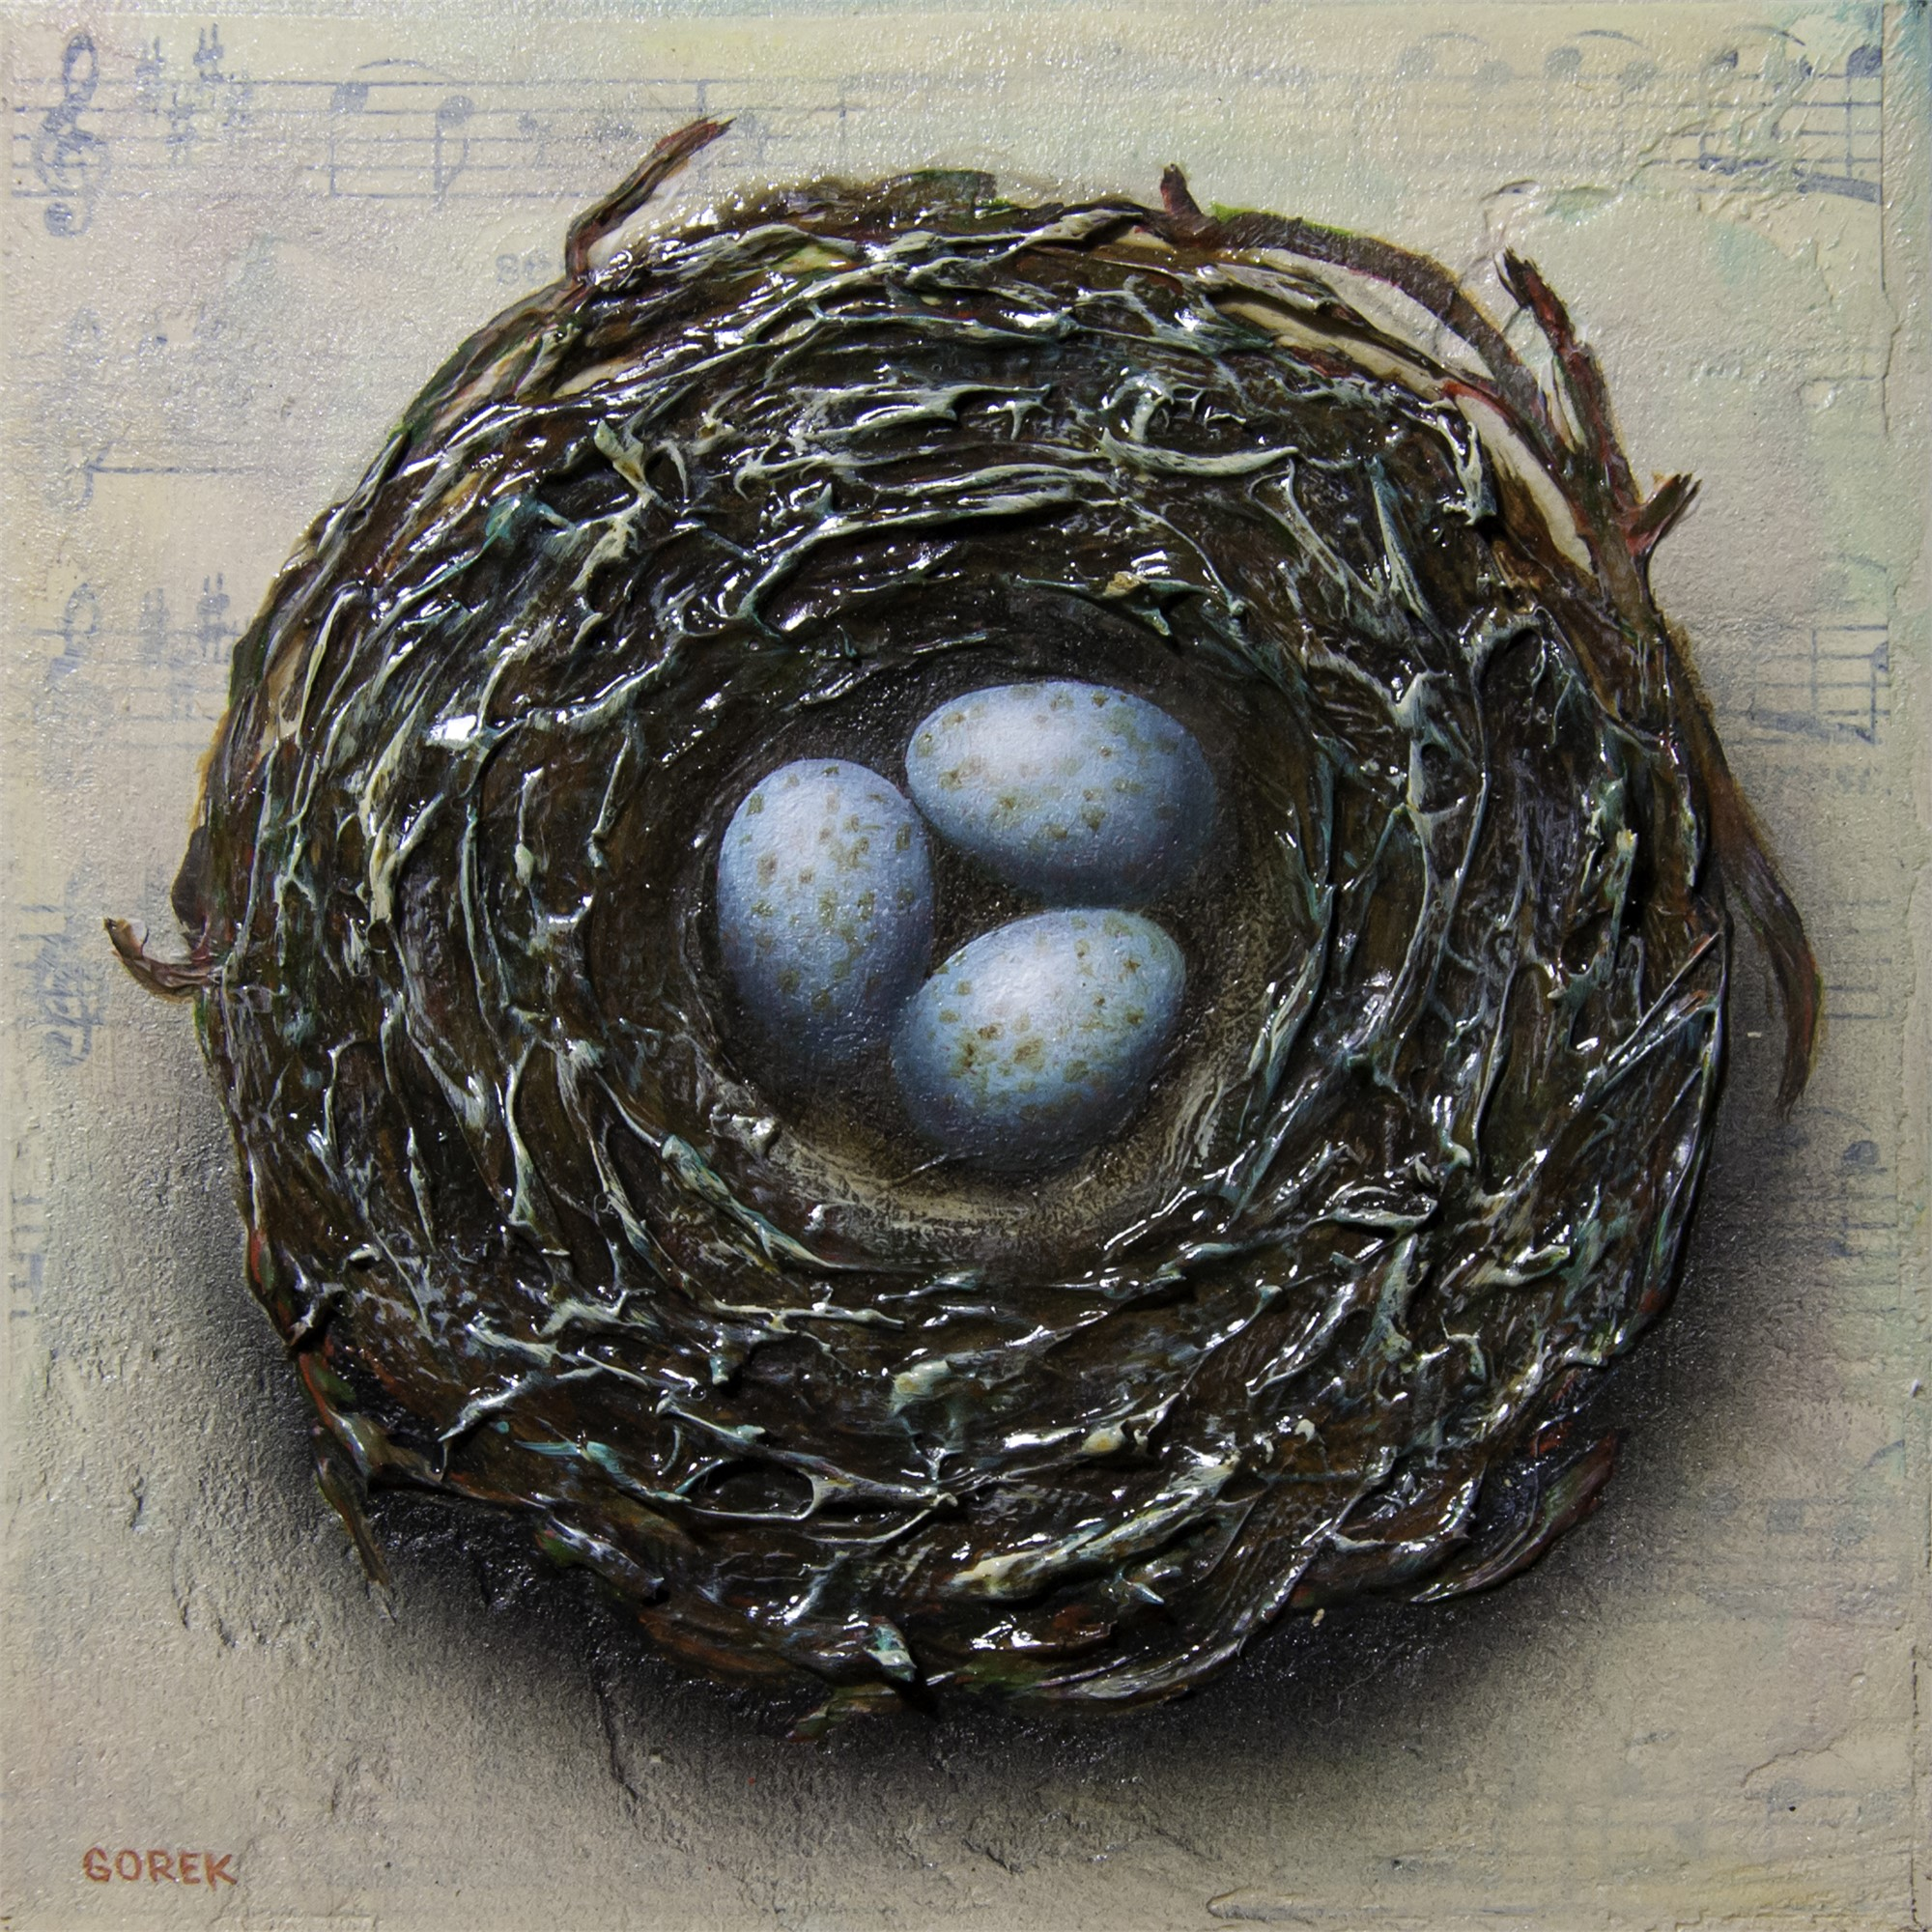 Birds Nest 3 by Thane Gorek